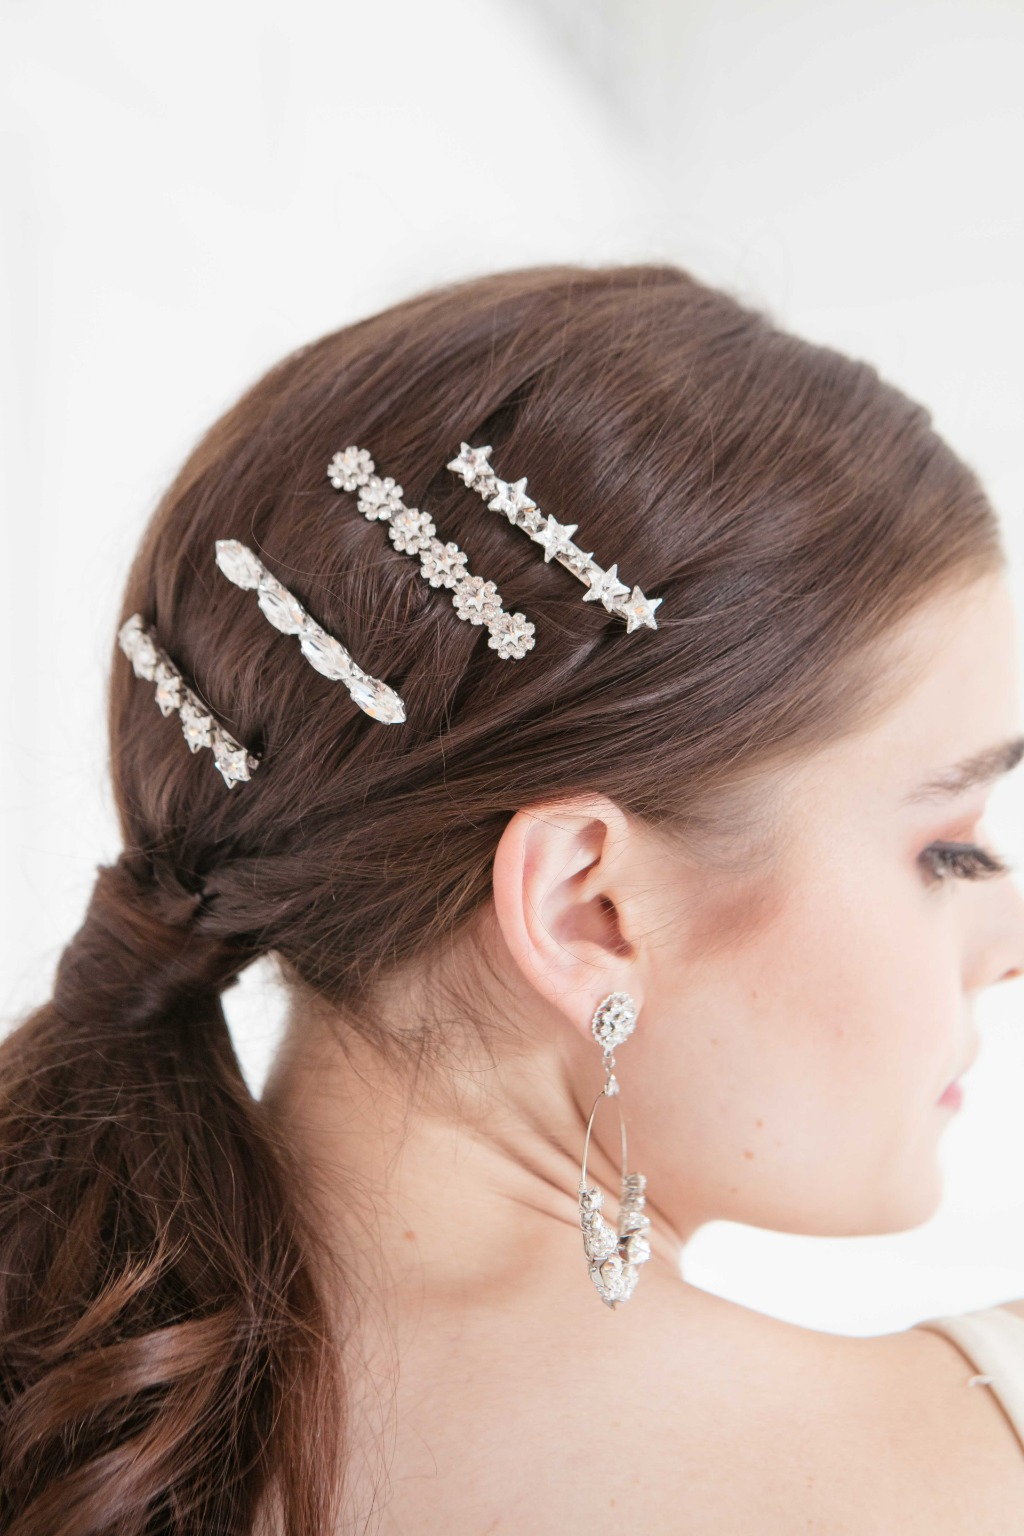 Check out our cute hair accessories from Laura Jayne.